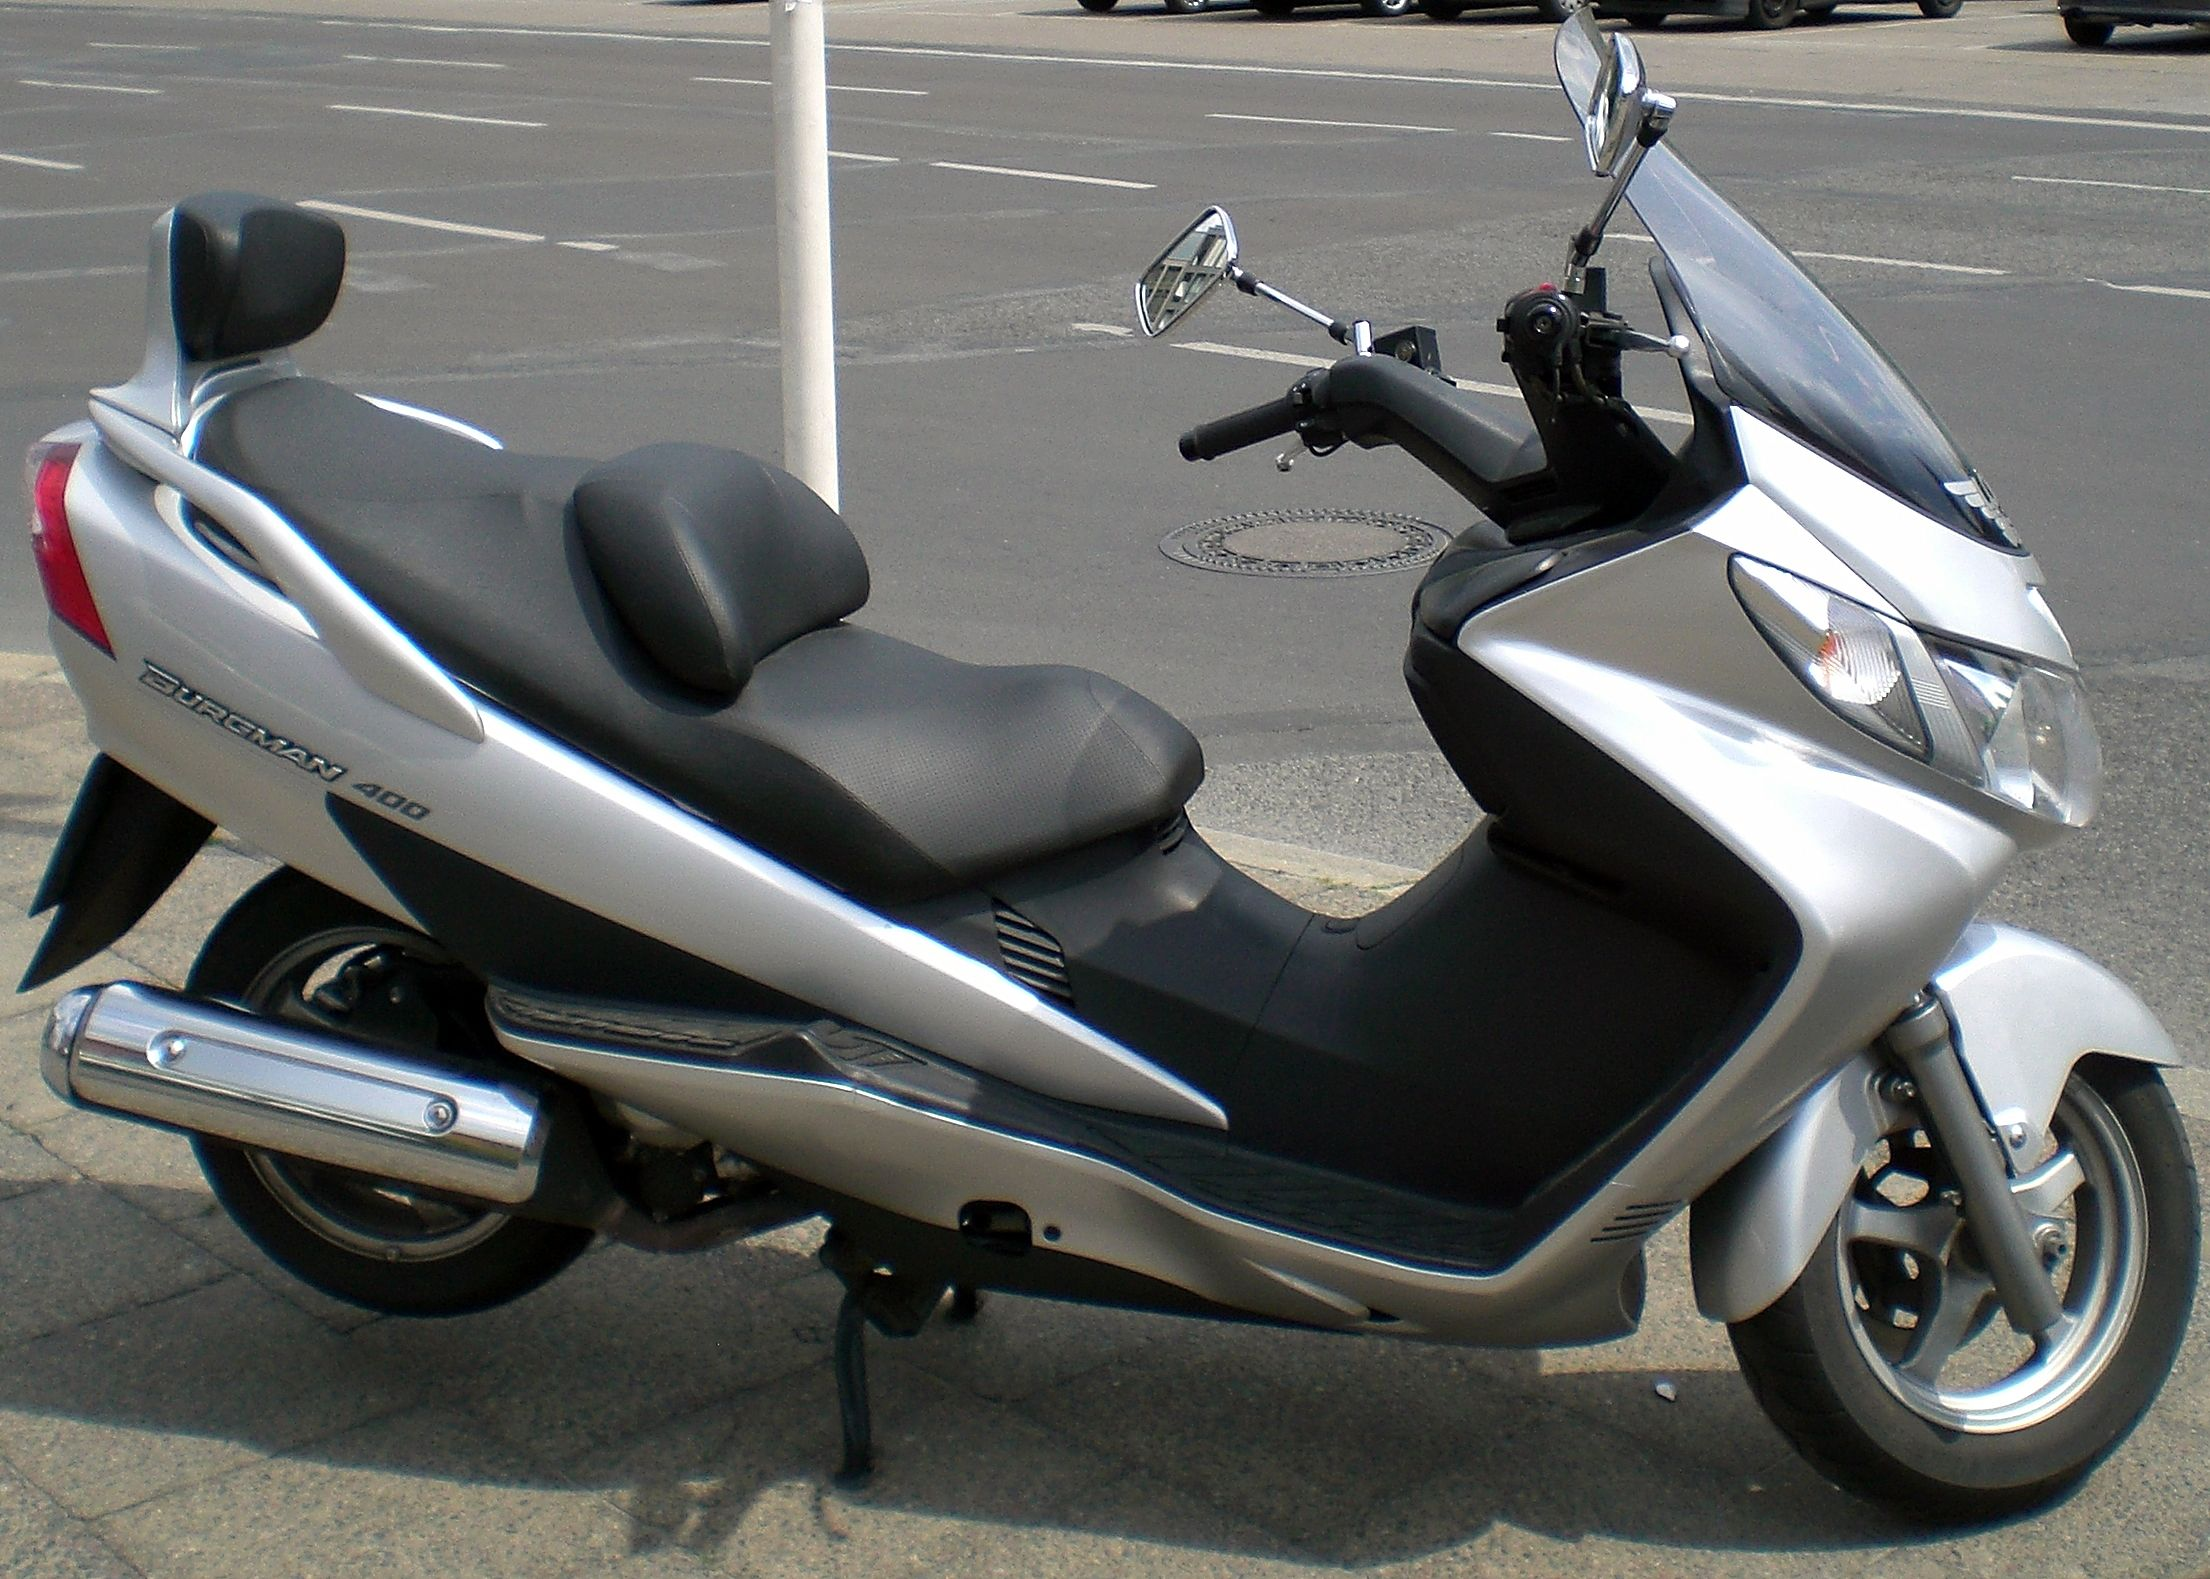 Suzuki Burgman 650 Executive. I've wanted one of these scooters for ...